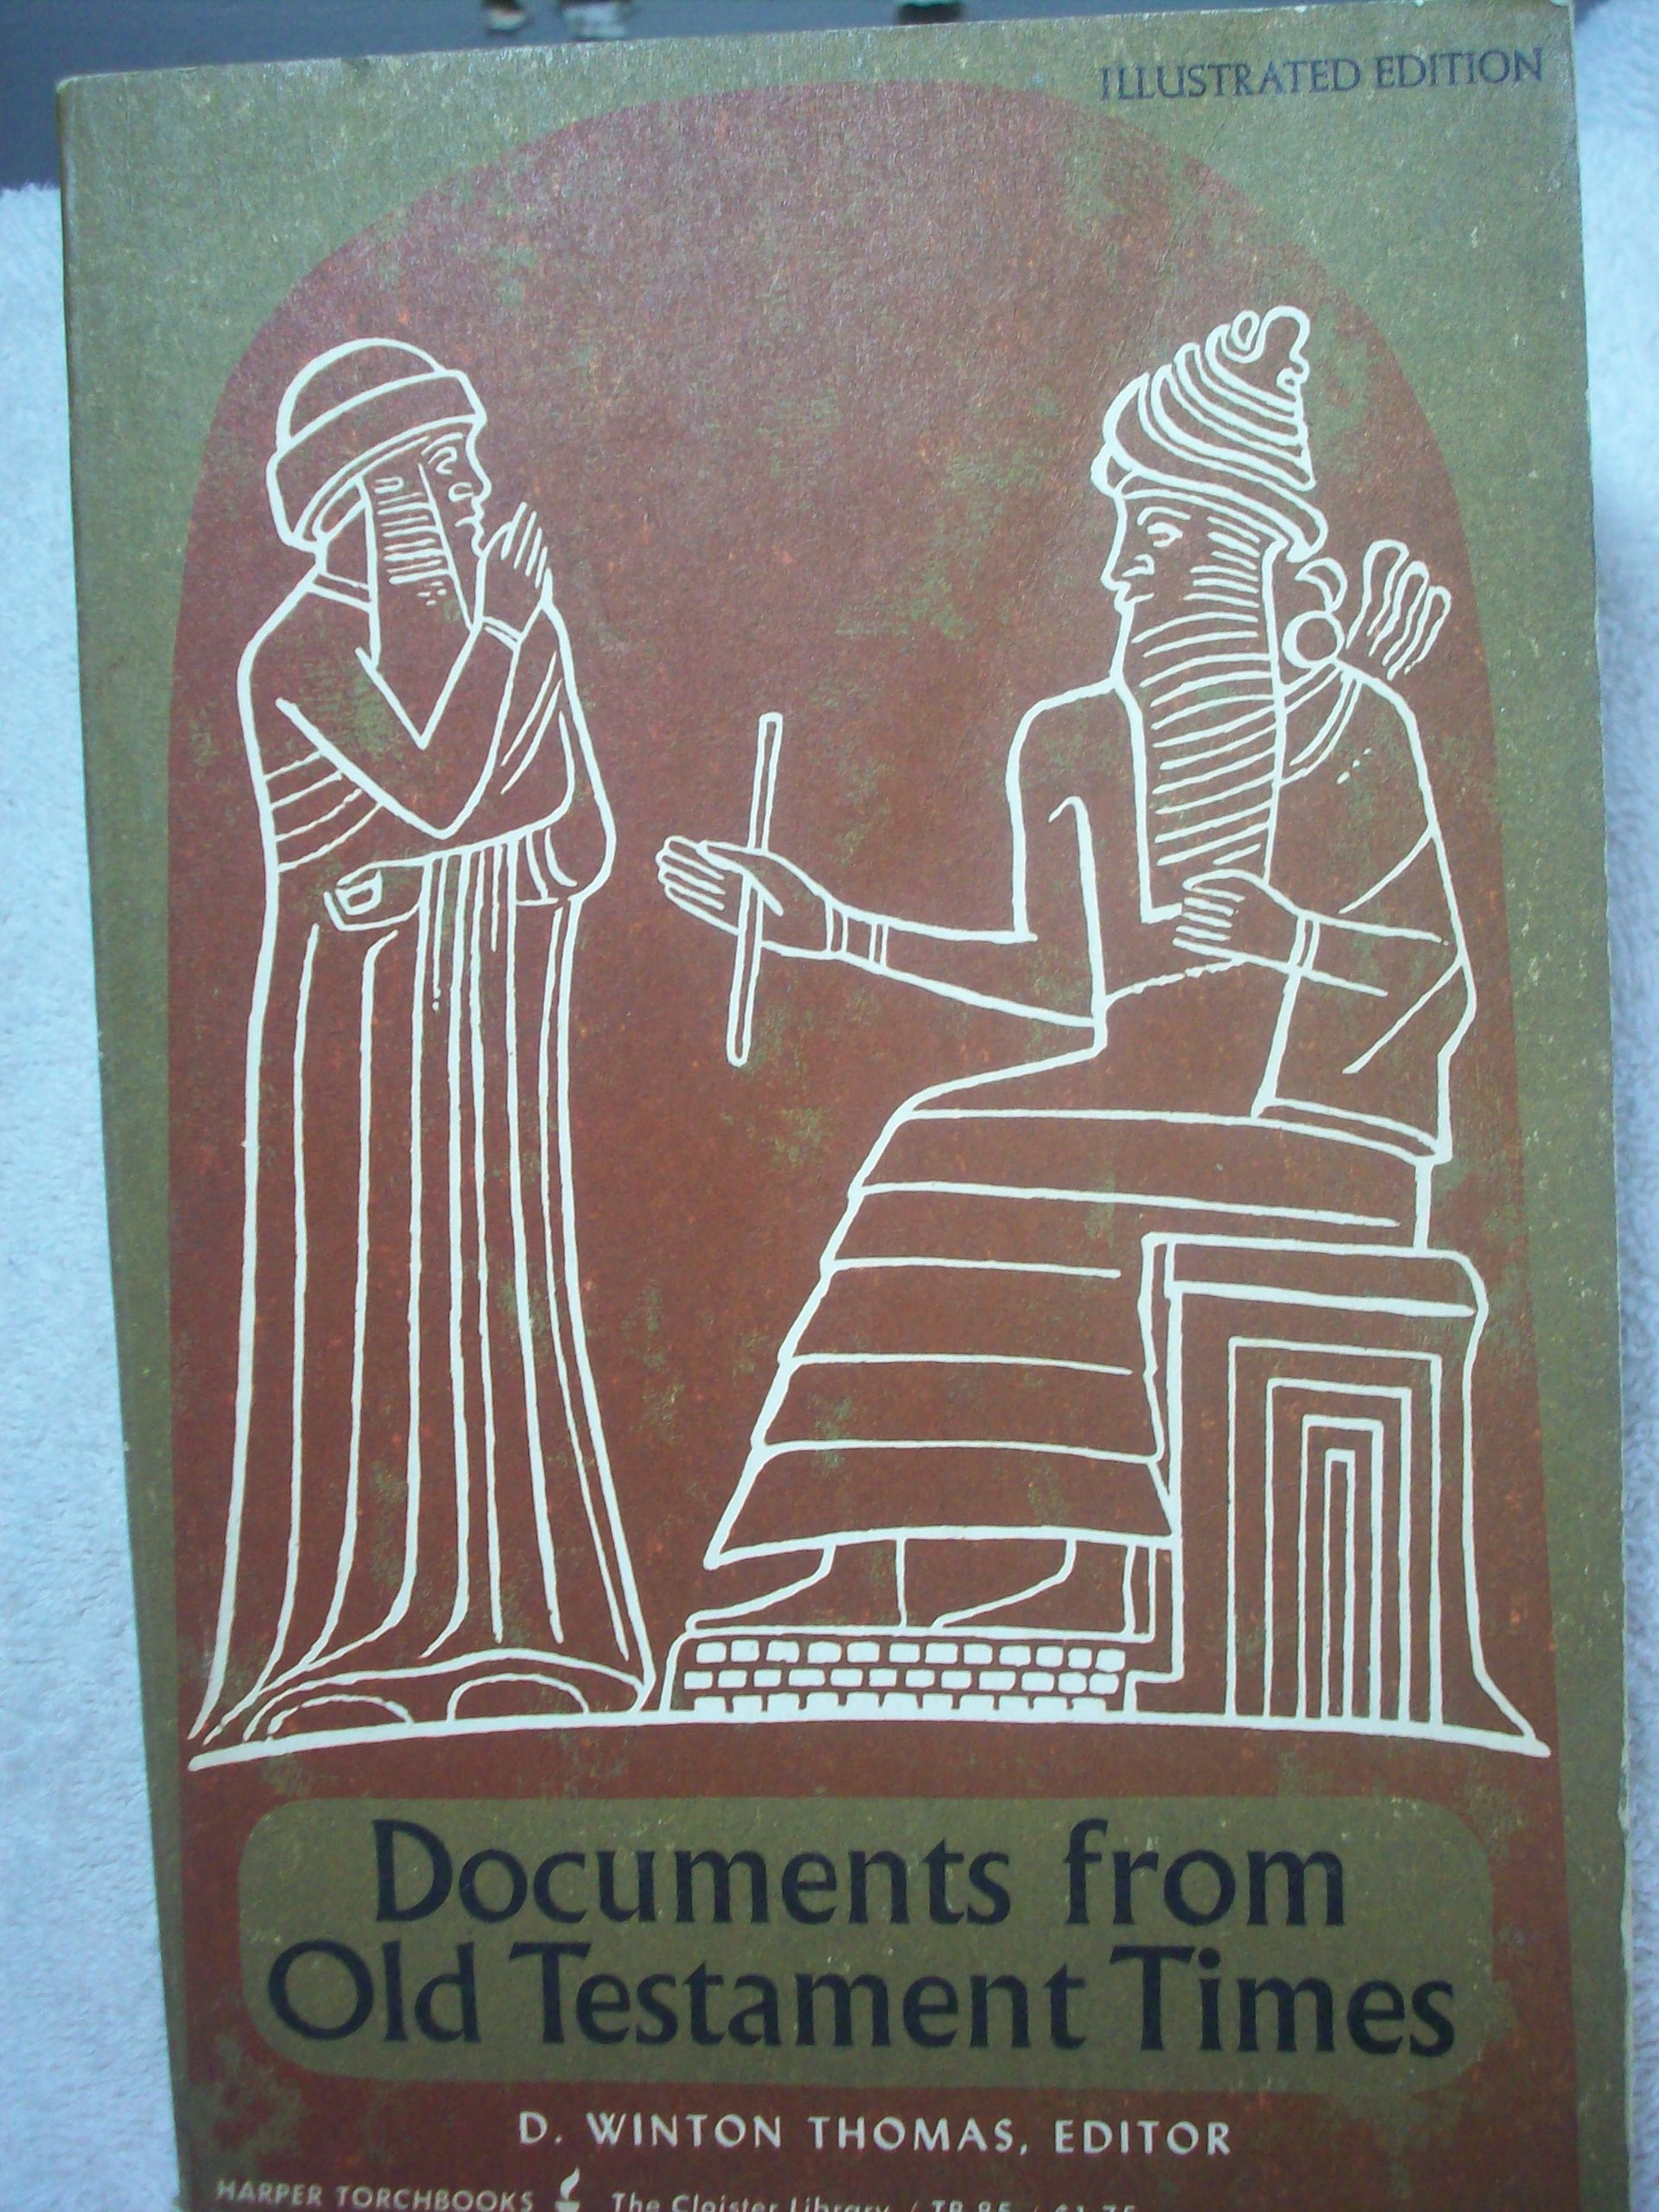 Documents from Old Testament Times (Harper Torchbook TB 85)